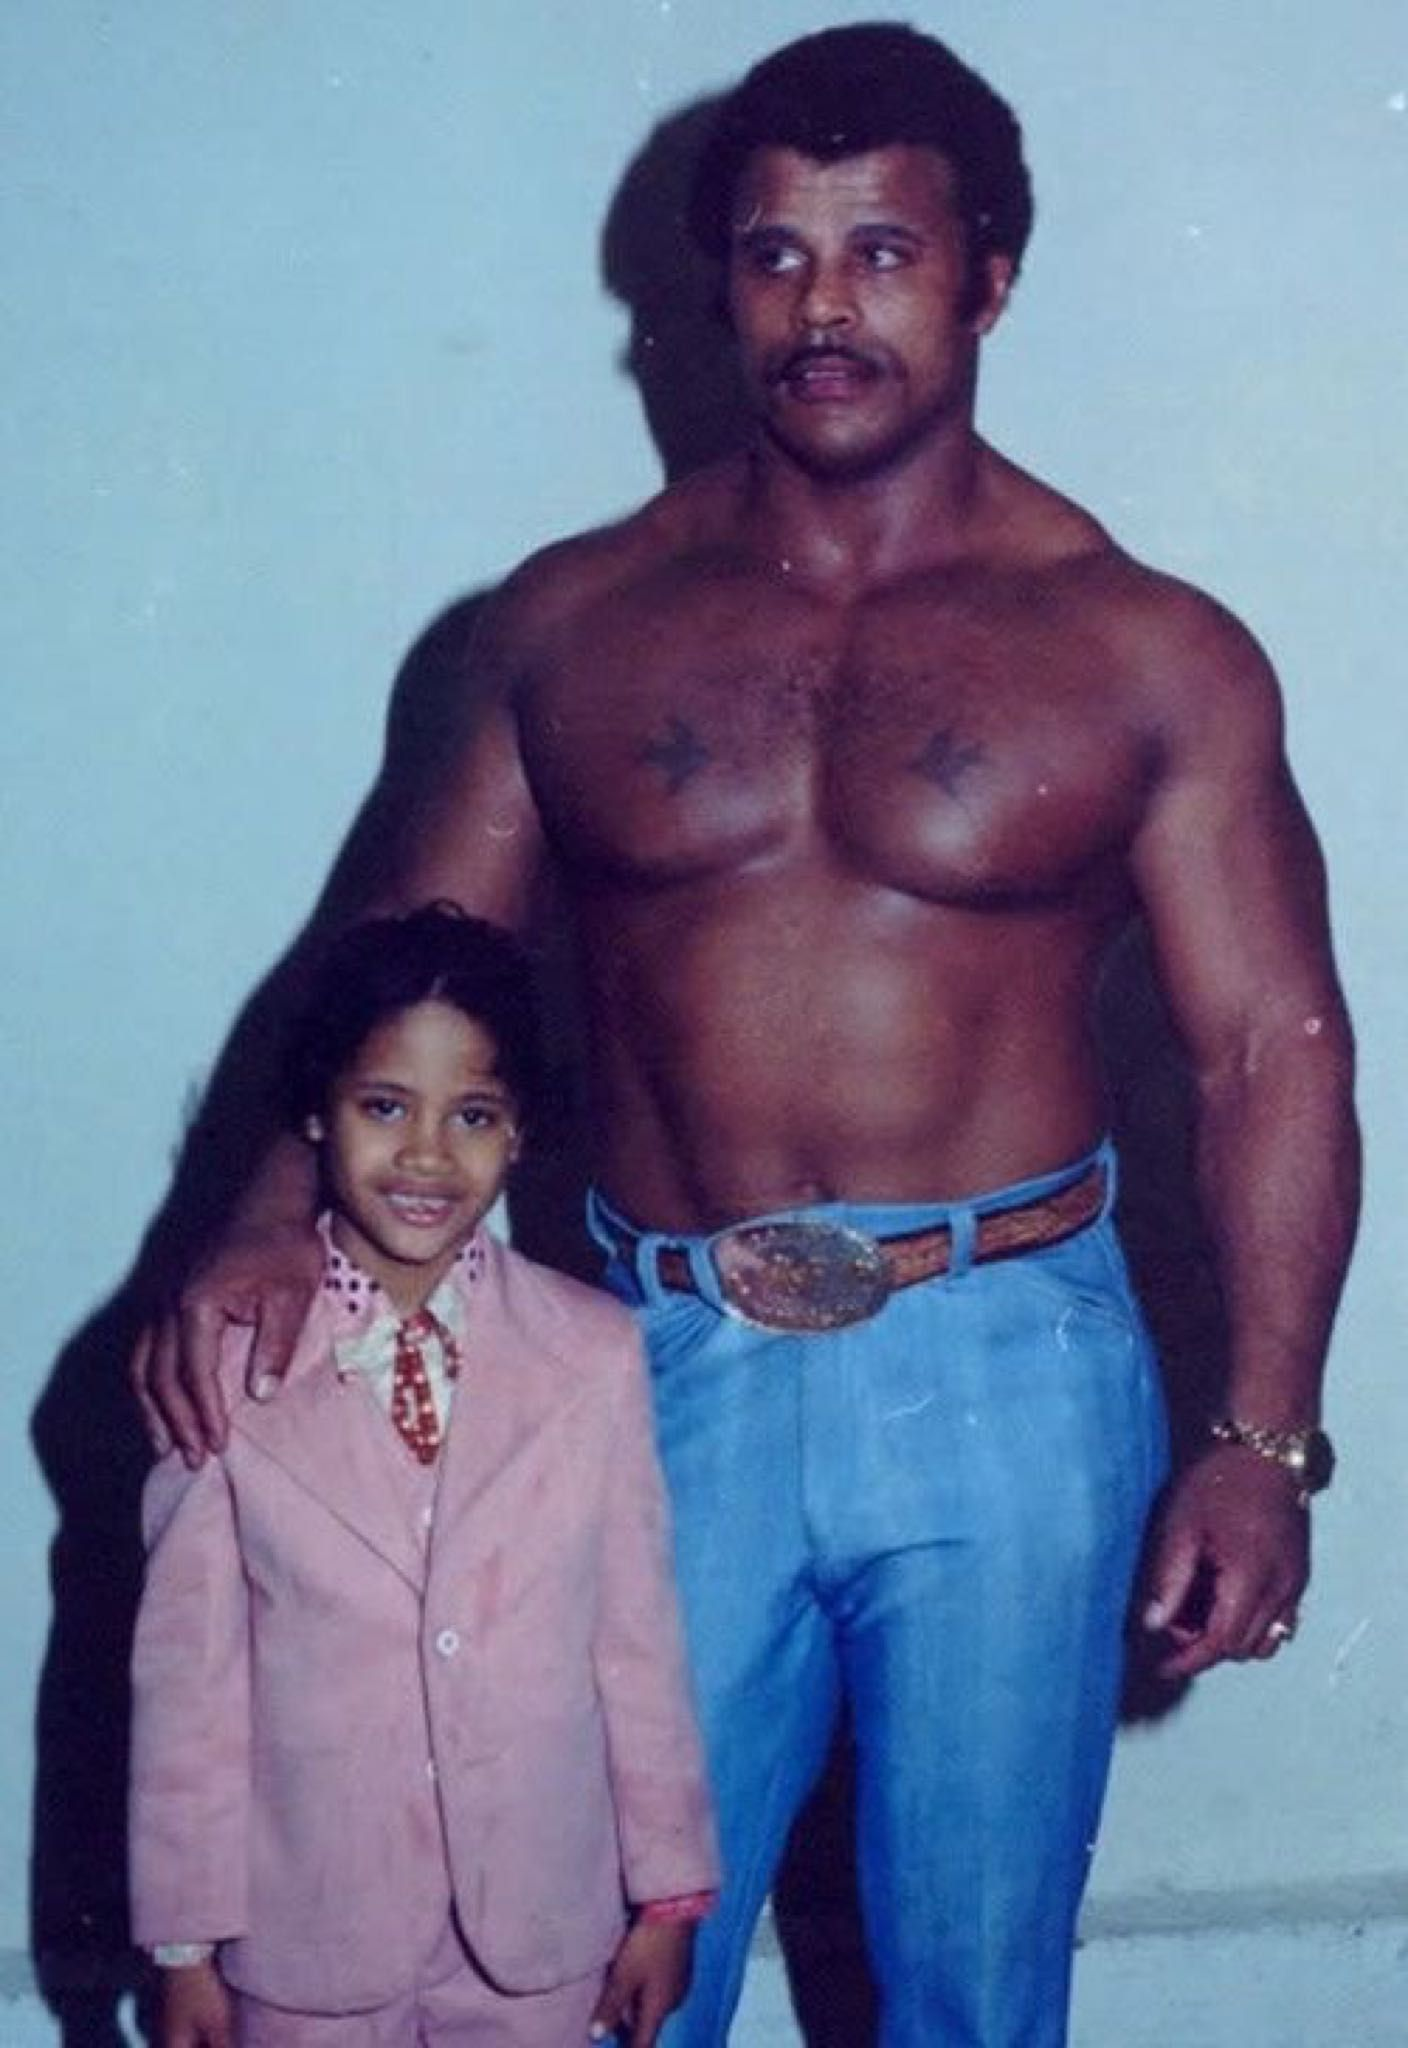 A young Dwayne Johnson with his dad Rocky